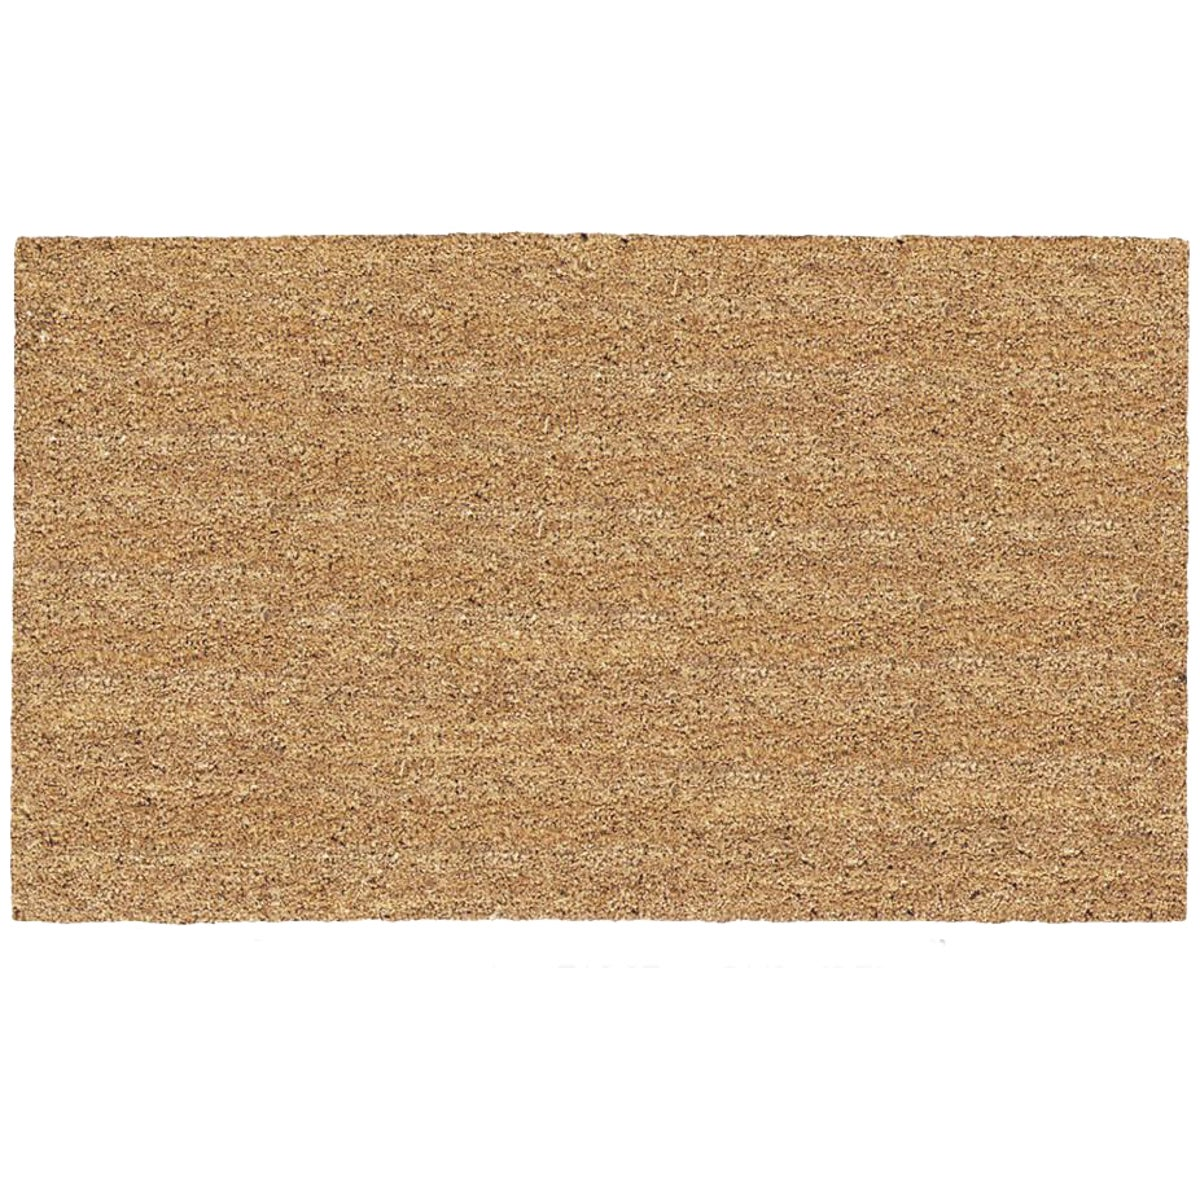 NATURAL TAN DOORMAT - 21562 by Uscoa Llc